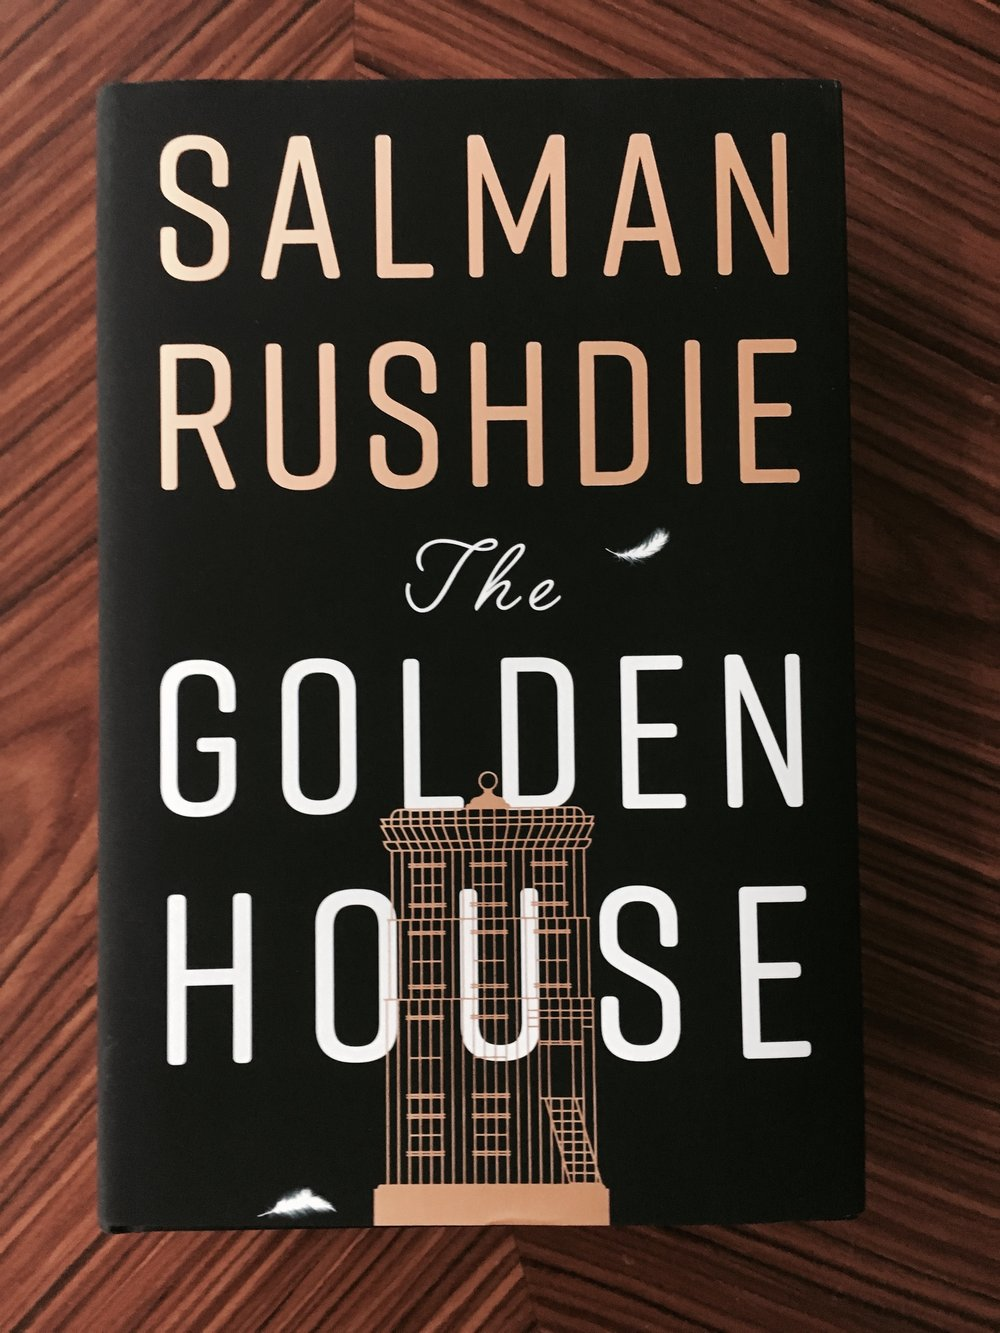 The Golden House is published by Jonathan Cape.